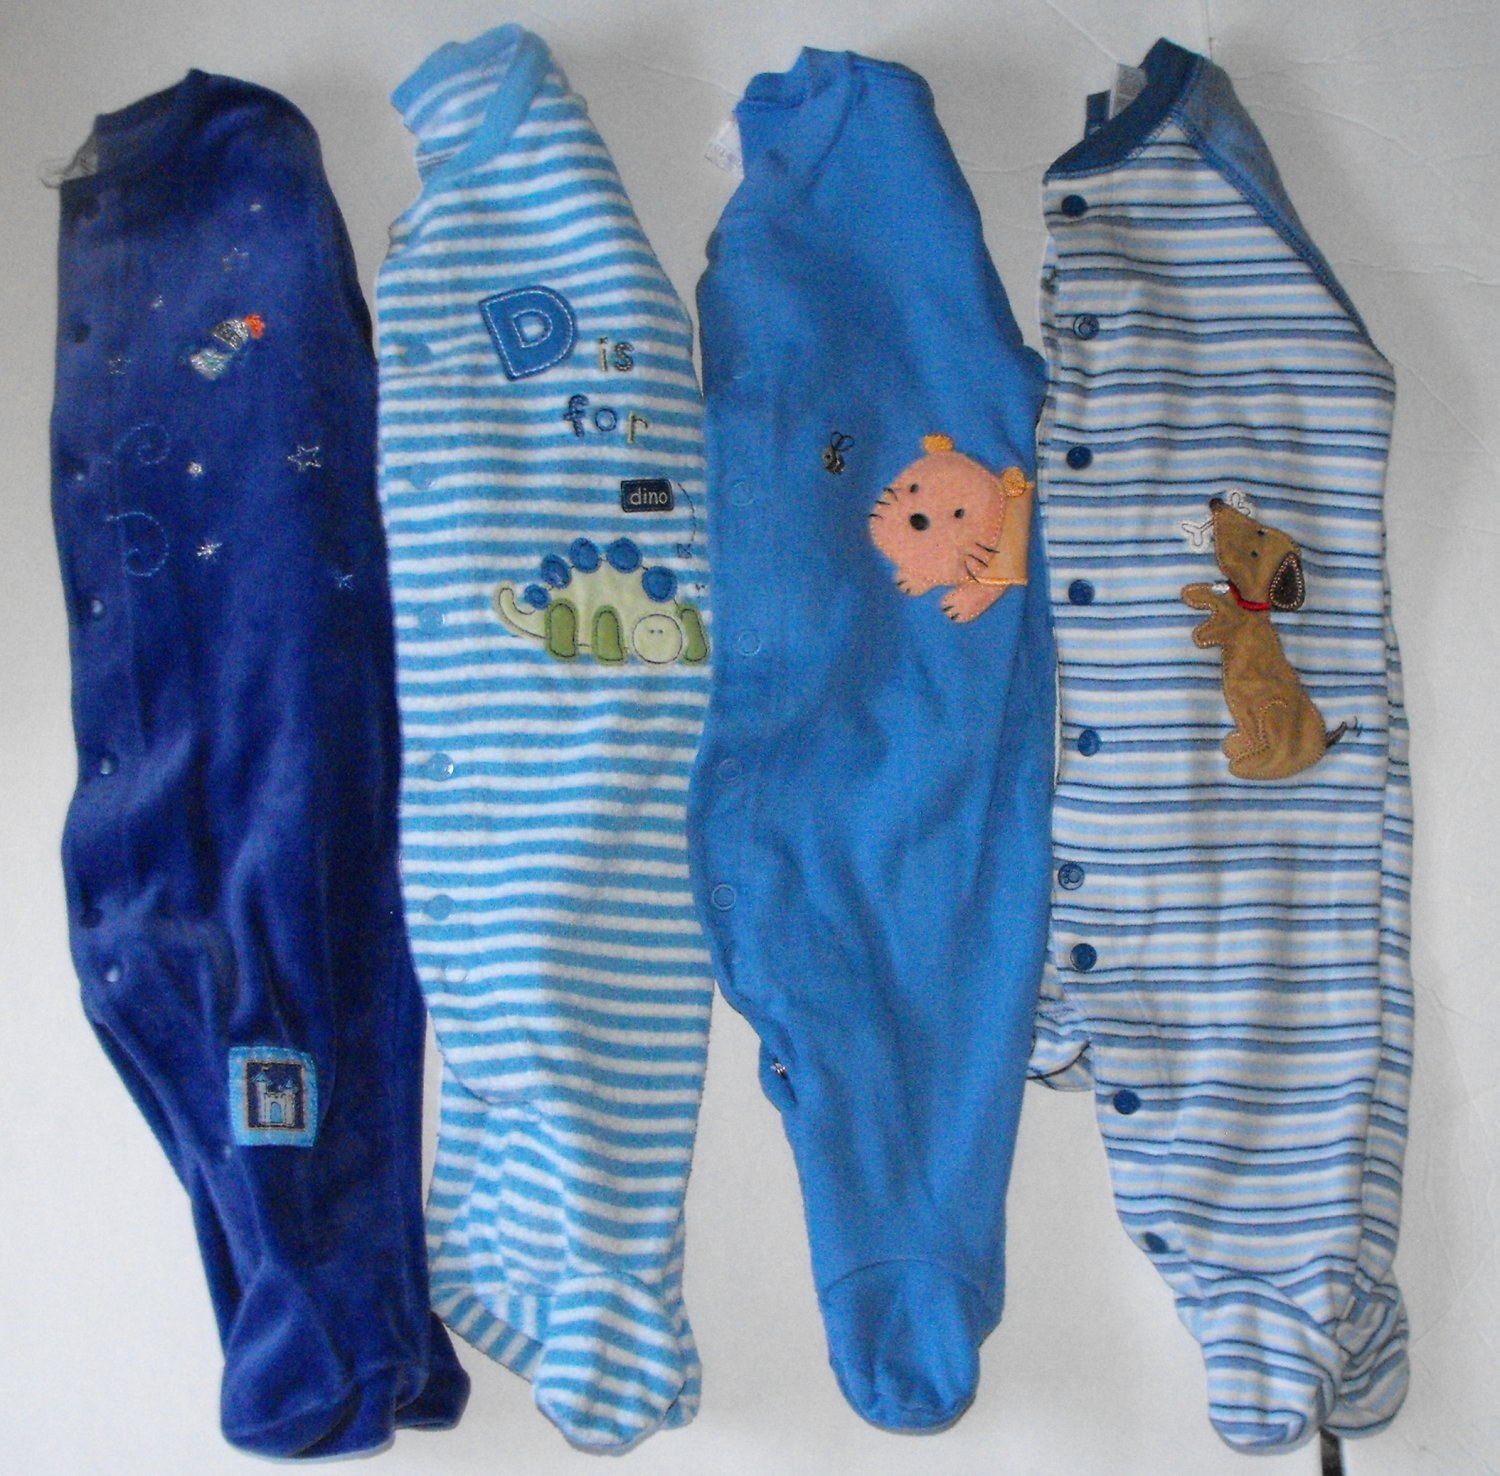 Carter's Baby Boy Blue 3-6 Months Sleepers Lot of 4